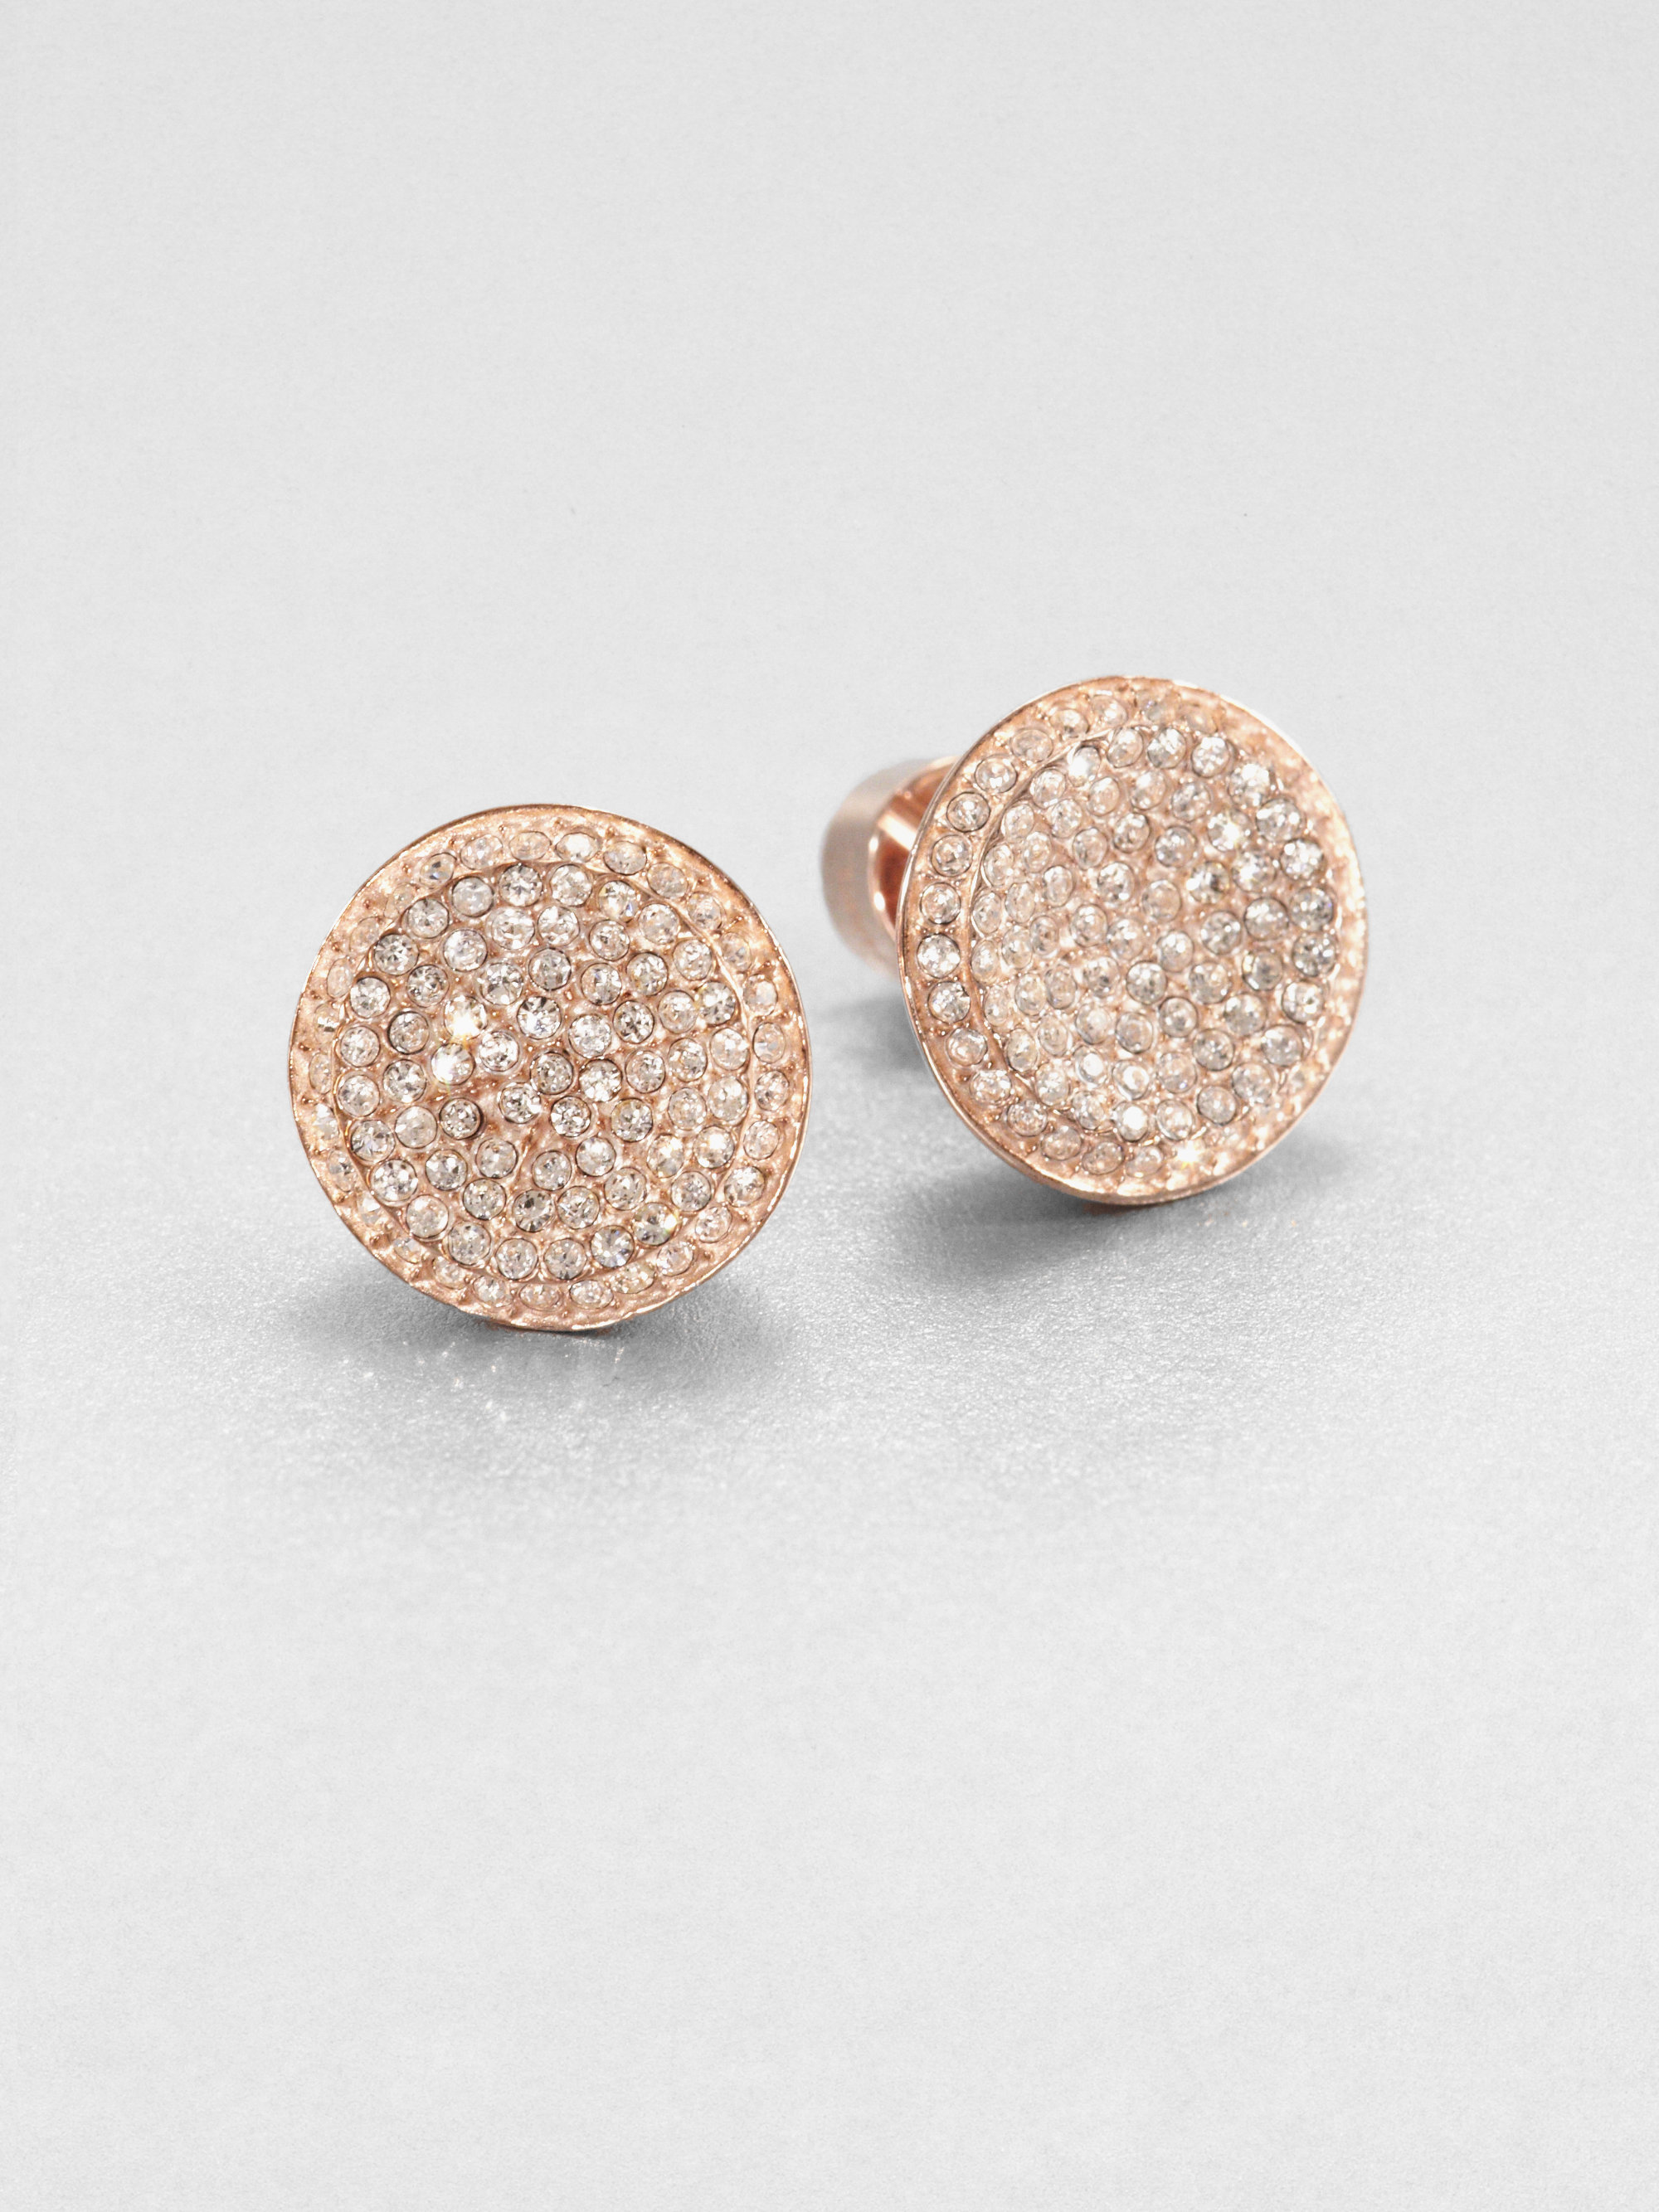 Lyst Michael Kors Concave Sparkle Stud Earrings in Pink